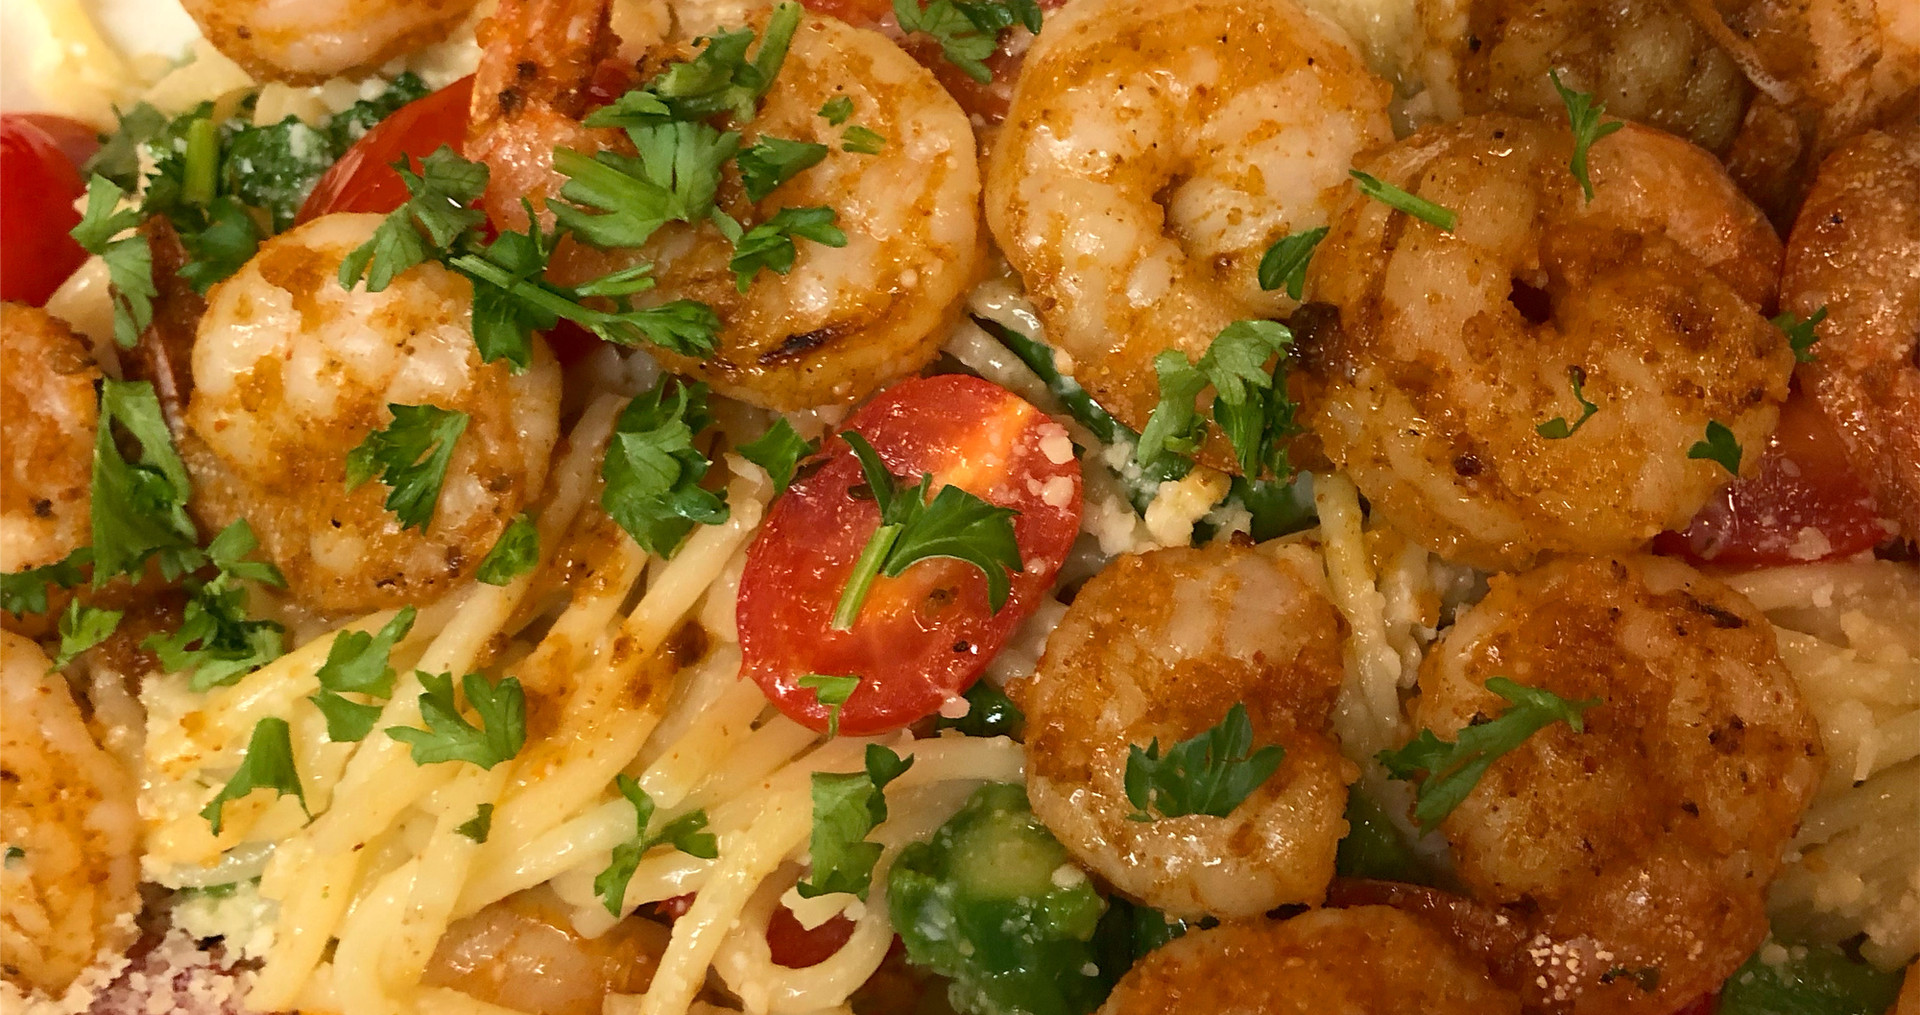 White Wine Garlic Butter Pasta Tossed with Cherry Tomatoes and Asparagus served with Marinated Shrimp